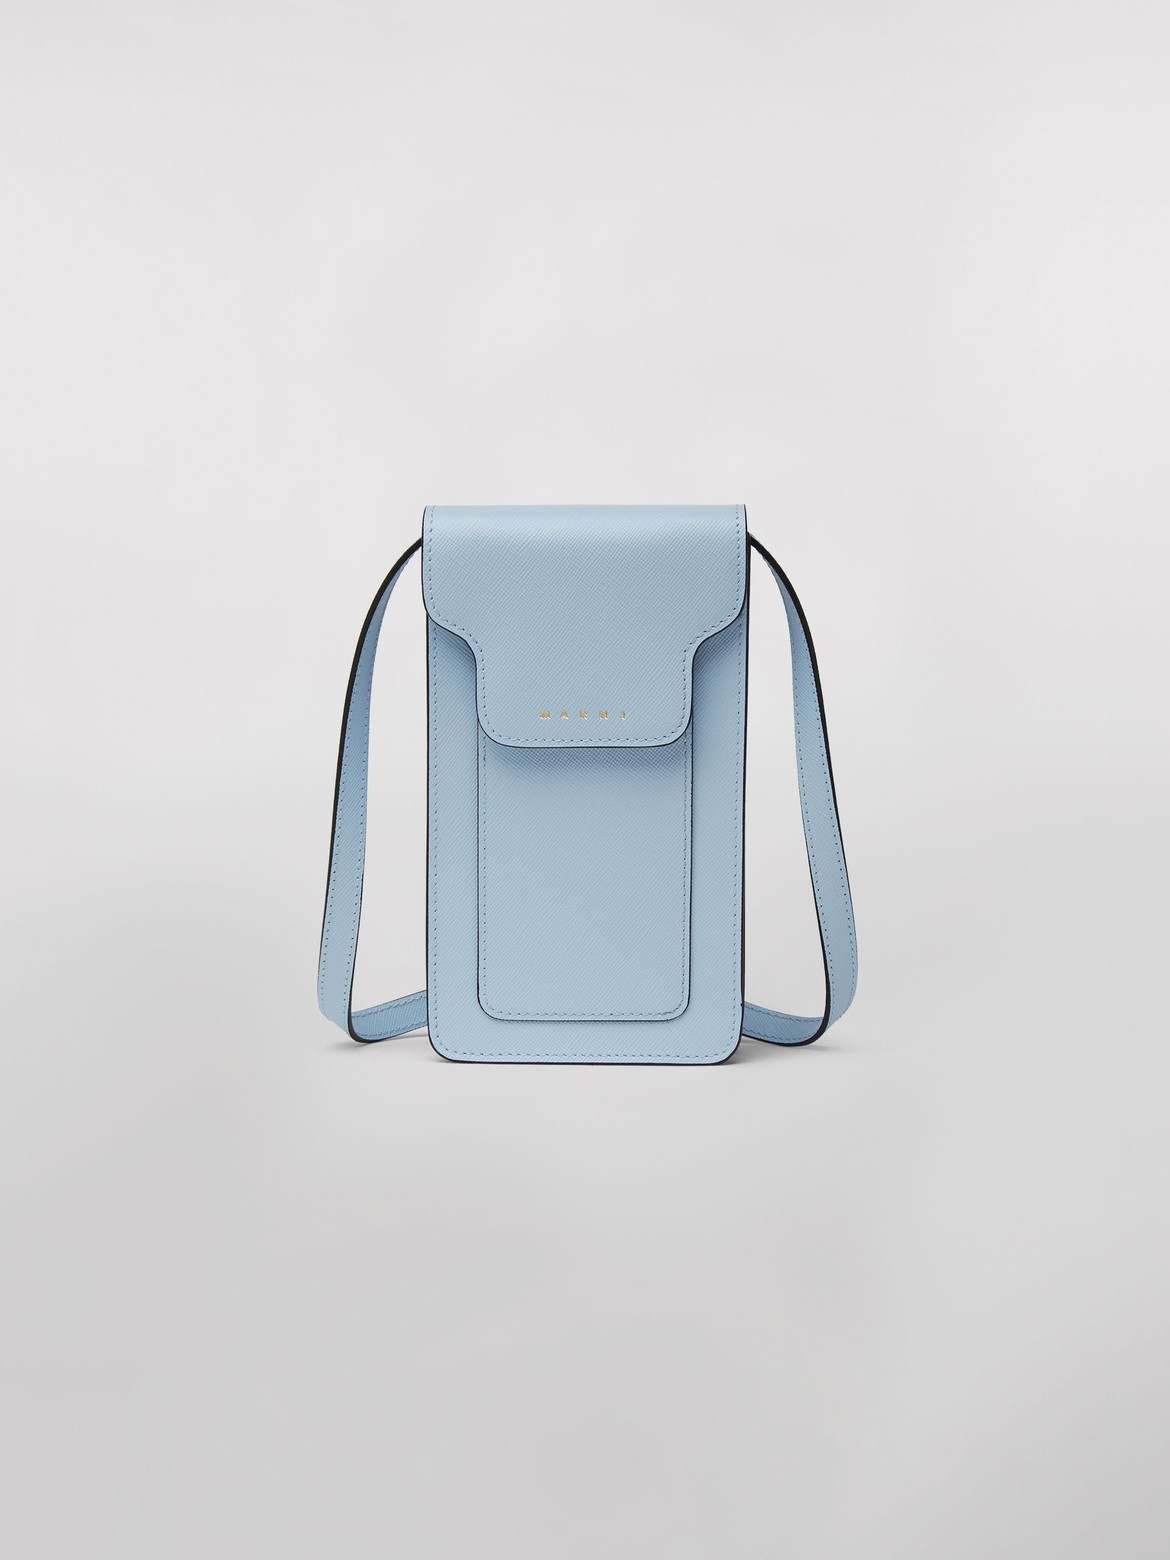 MARNI Leather Phone Case with Strap HK$4,900